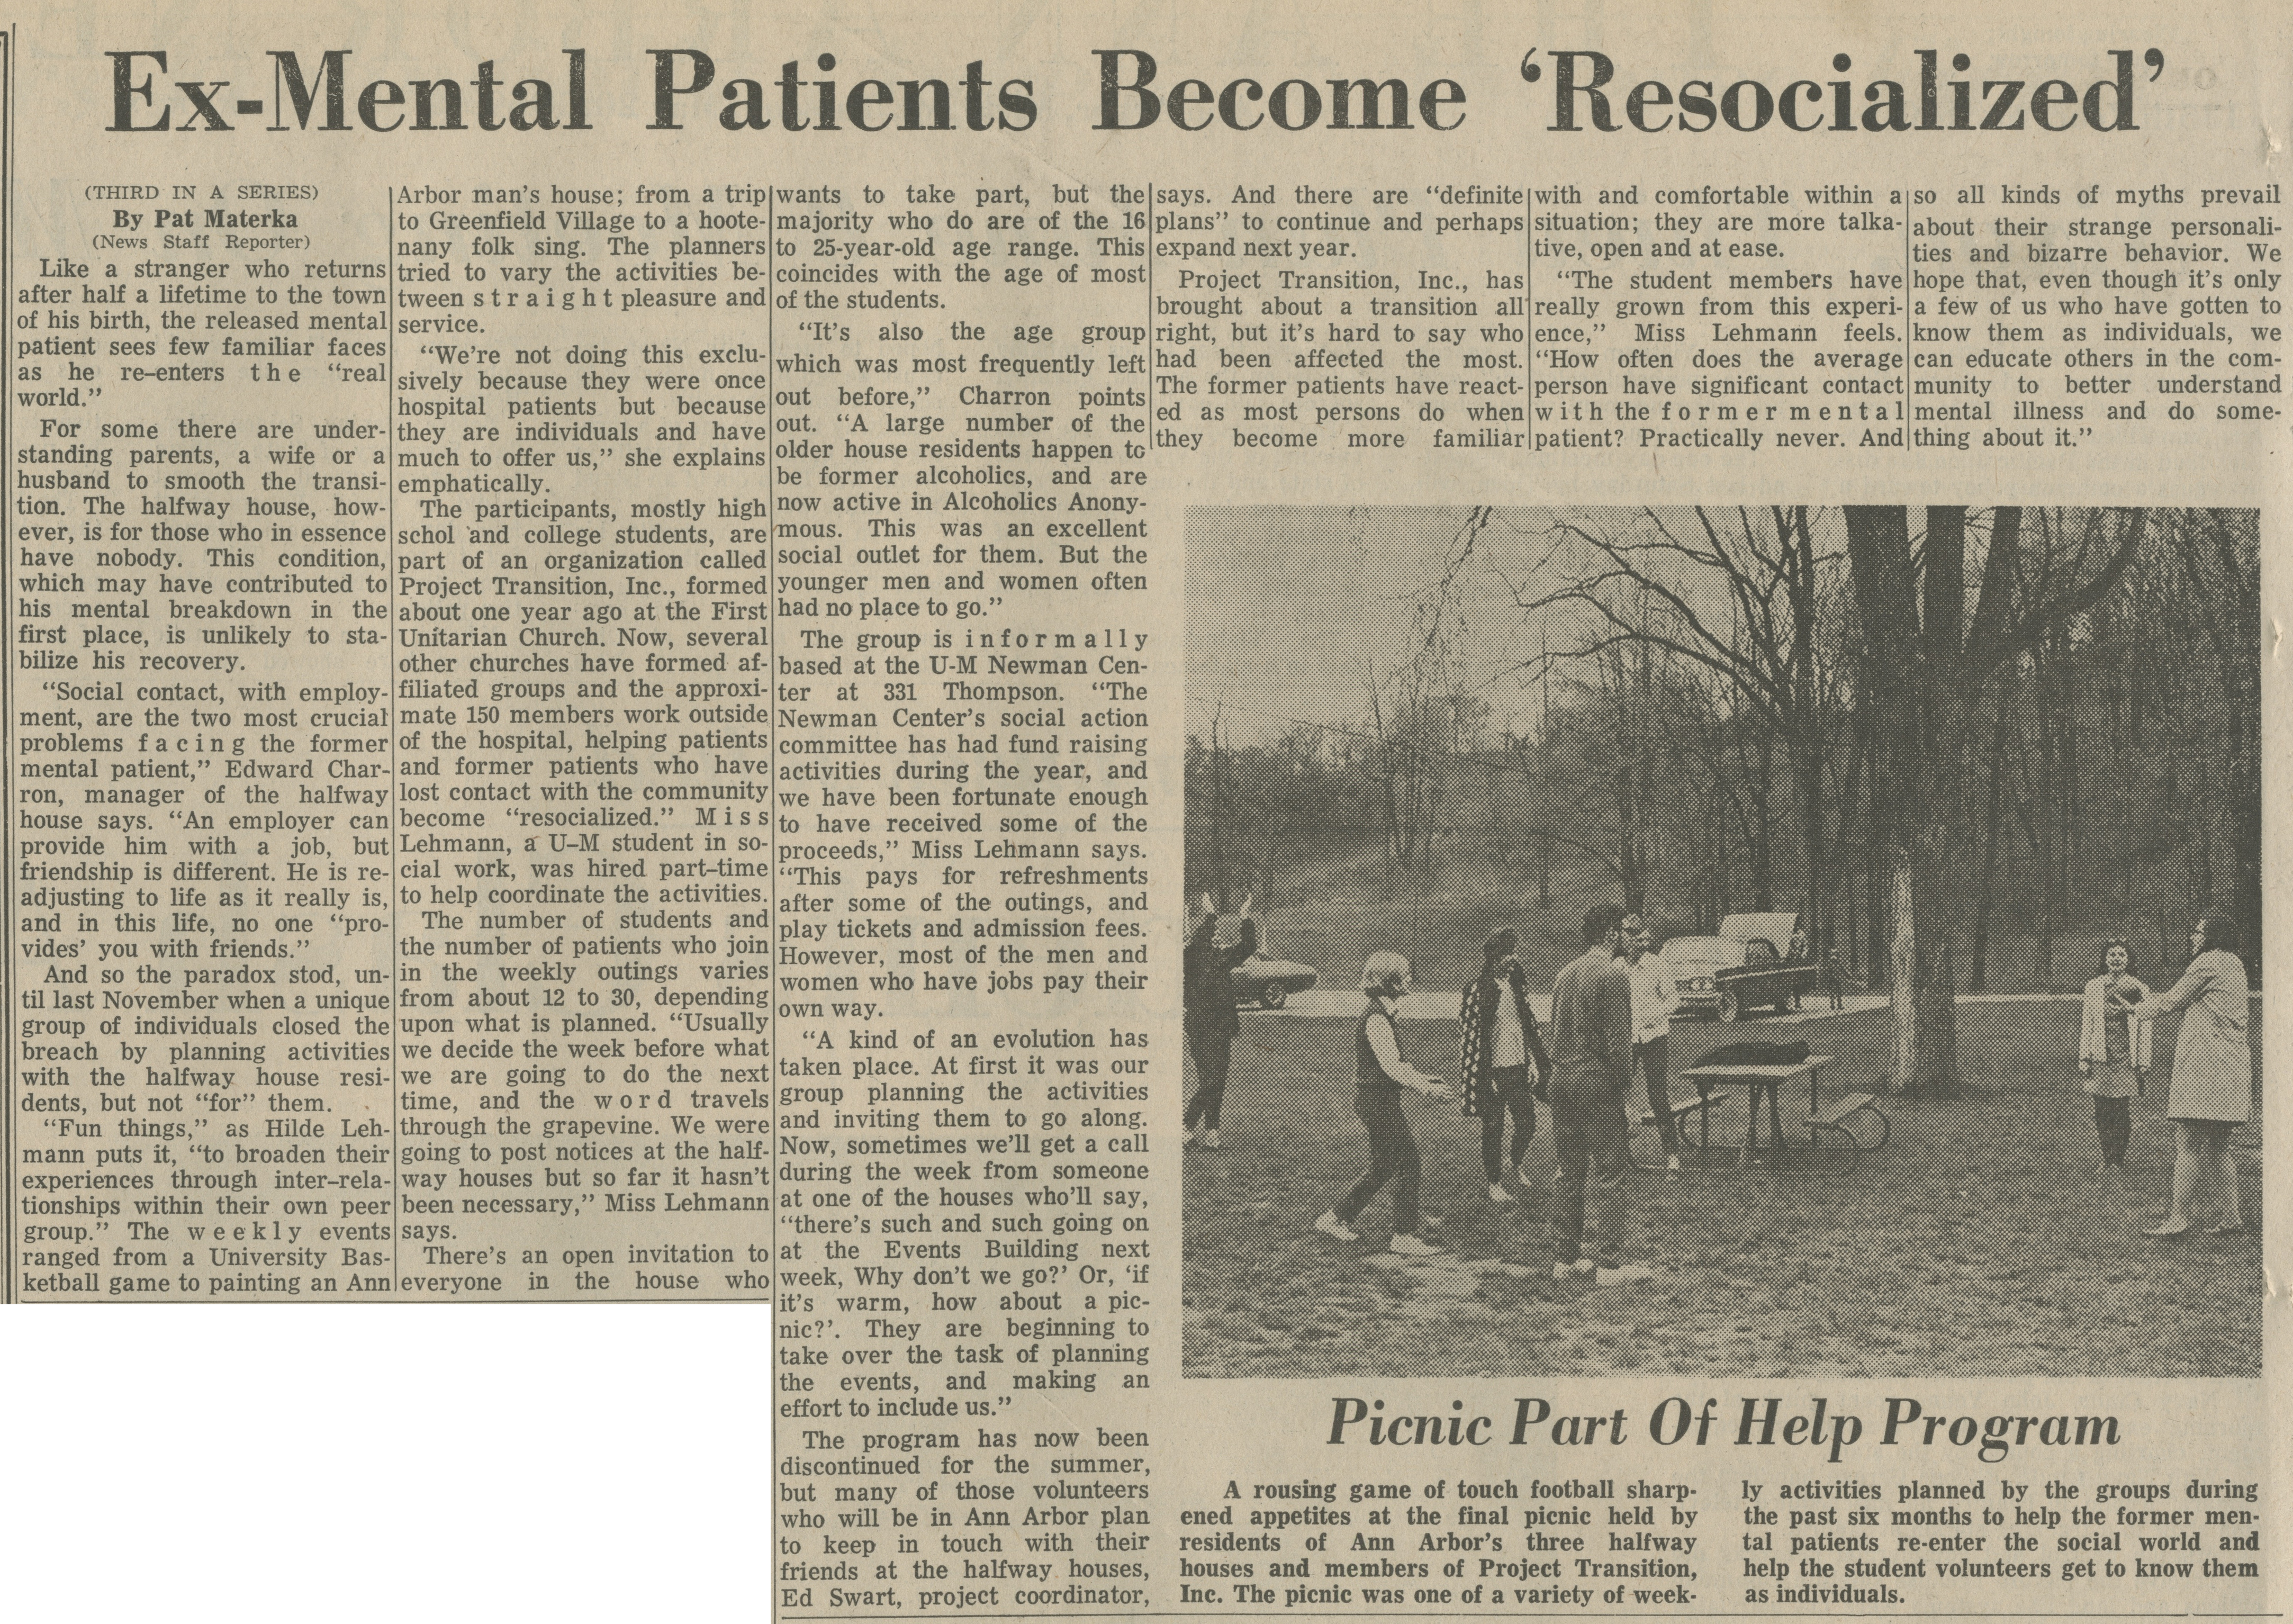 Ex-Mental Patients Become 'Resocialized' image